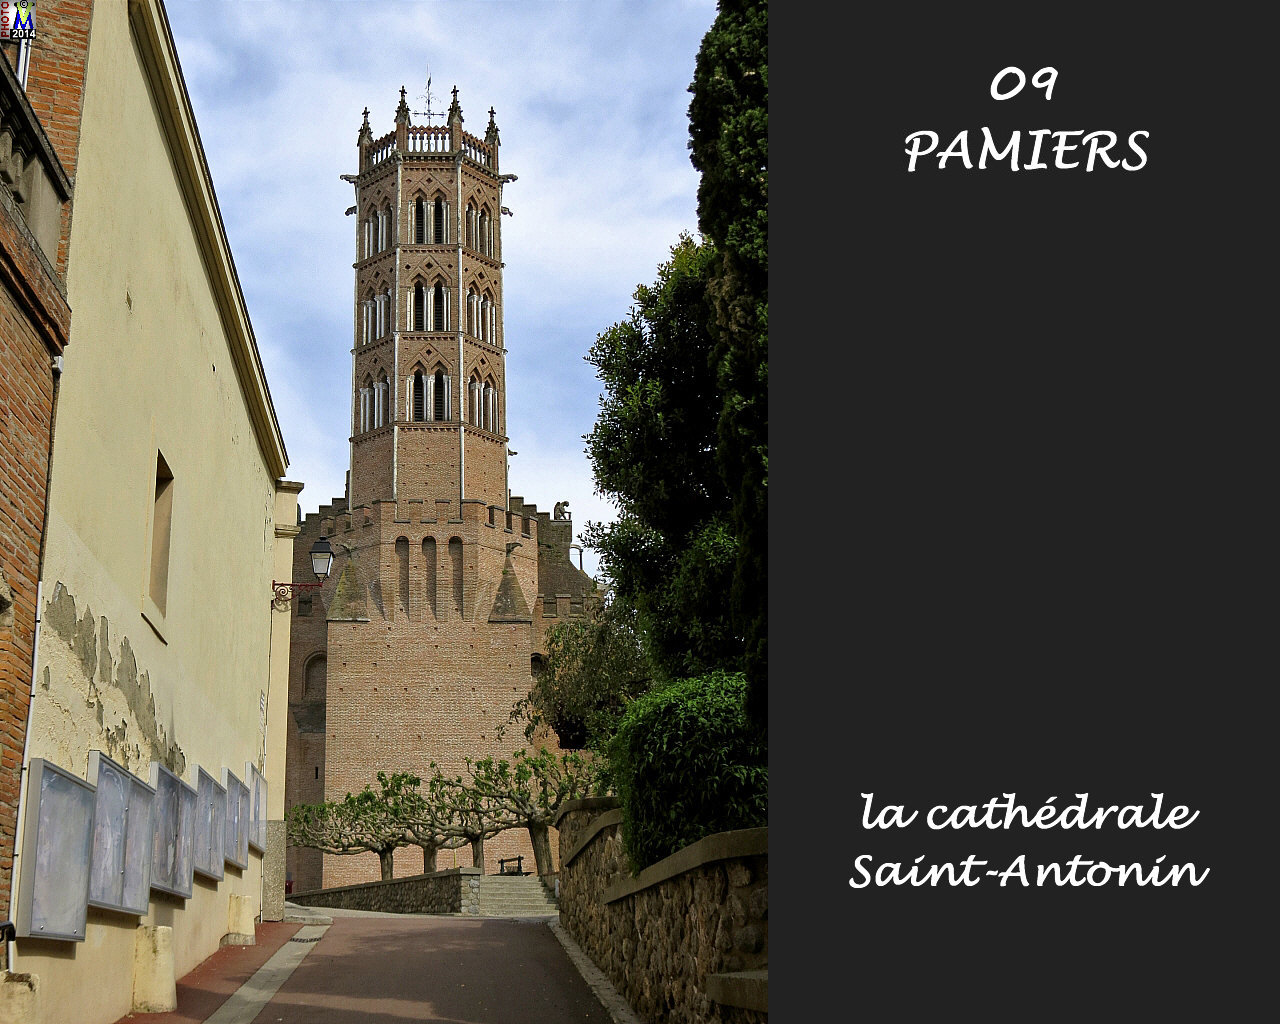 09PAMIERS_cathedrale_104.jpg